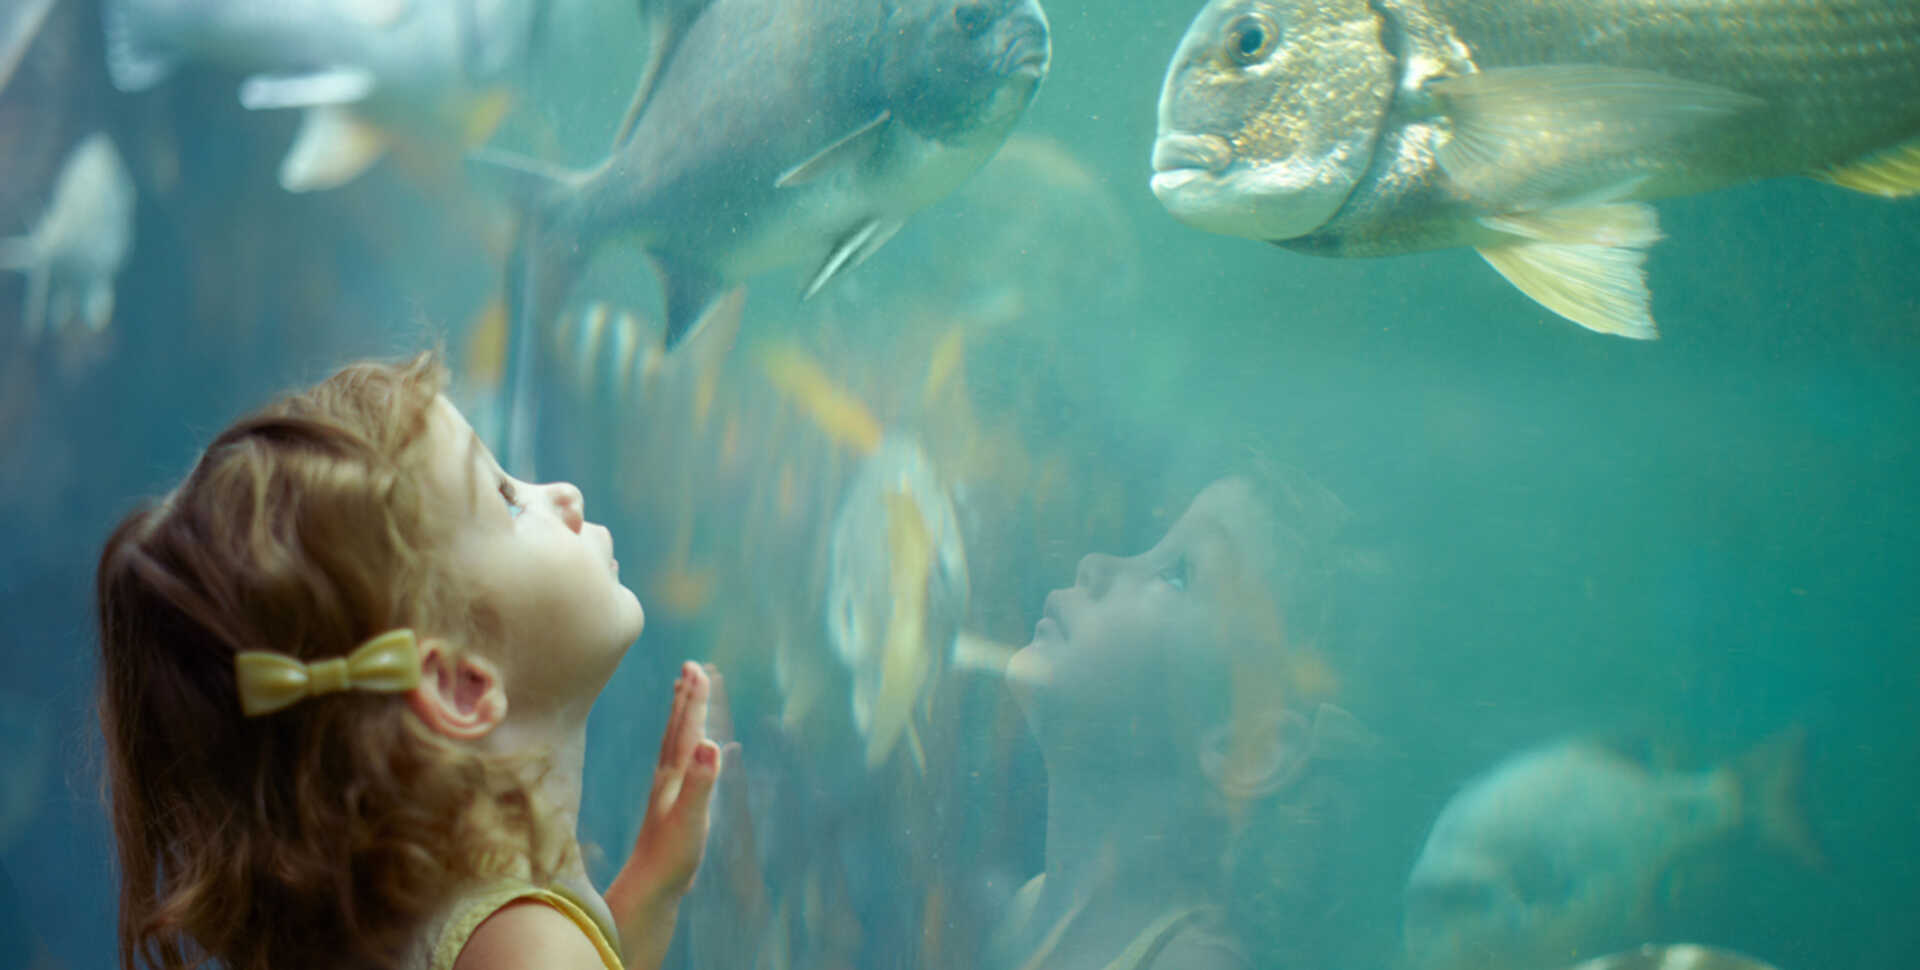 Young girl gazes up in awe at a large fish in the California Coast exhibit